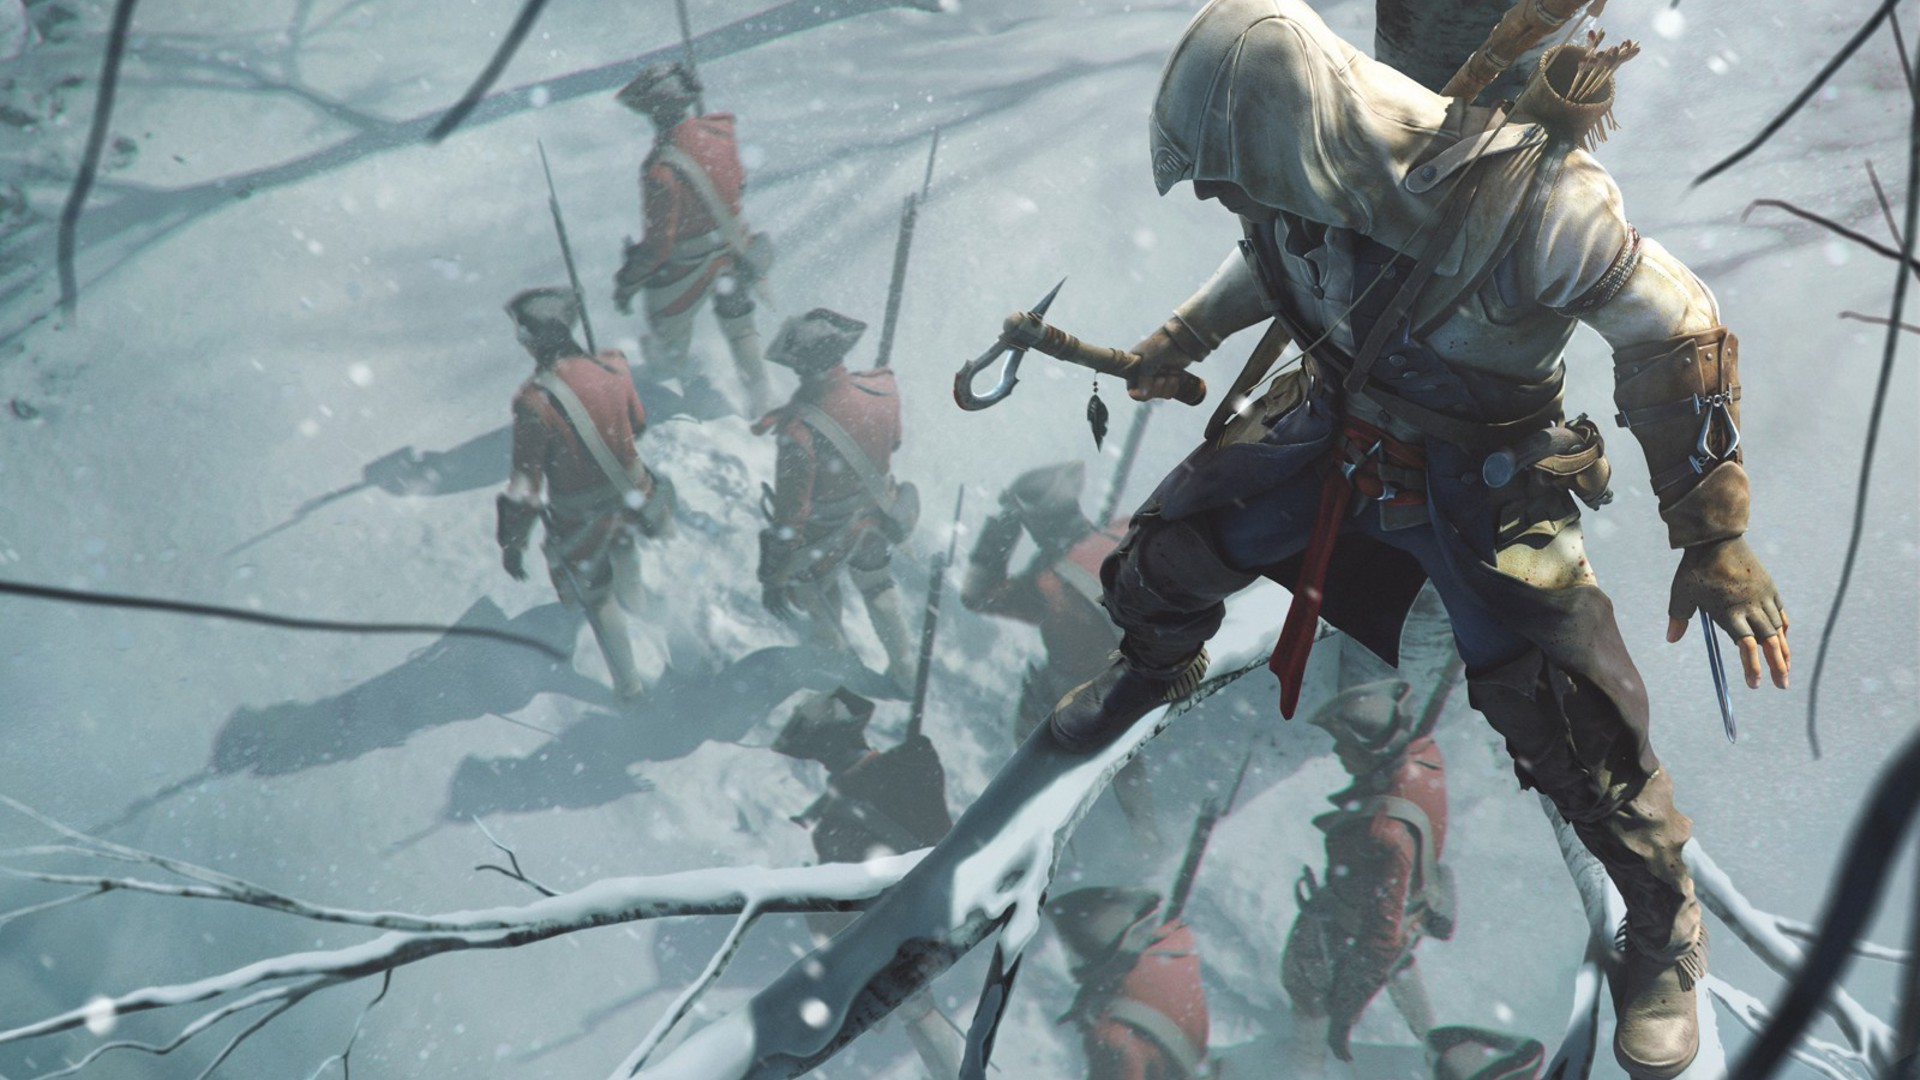 Tomahawk Assassins Creed 3 Bow Weapon Connor Wallpaper